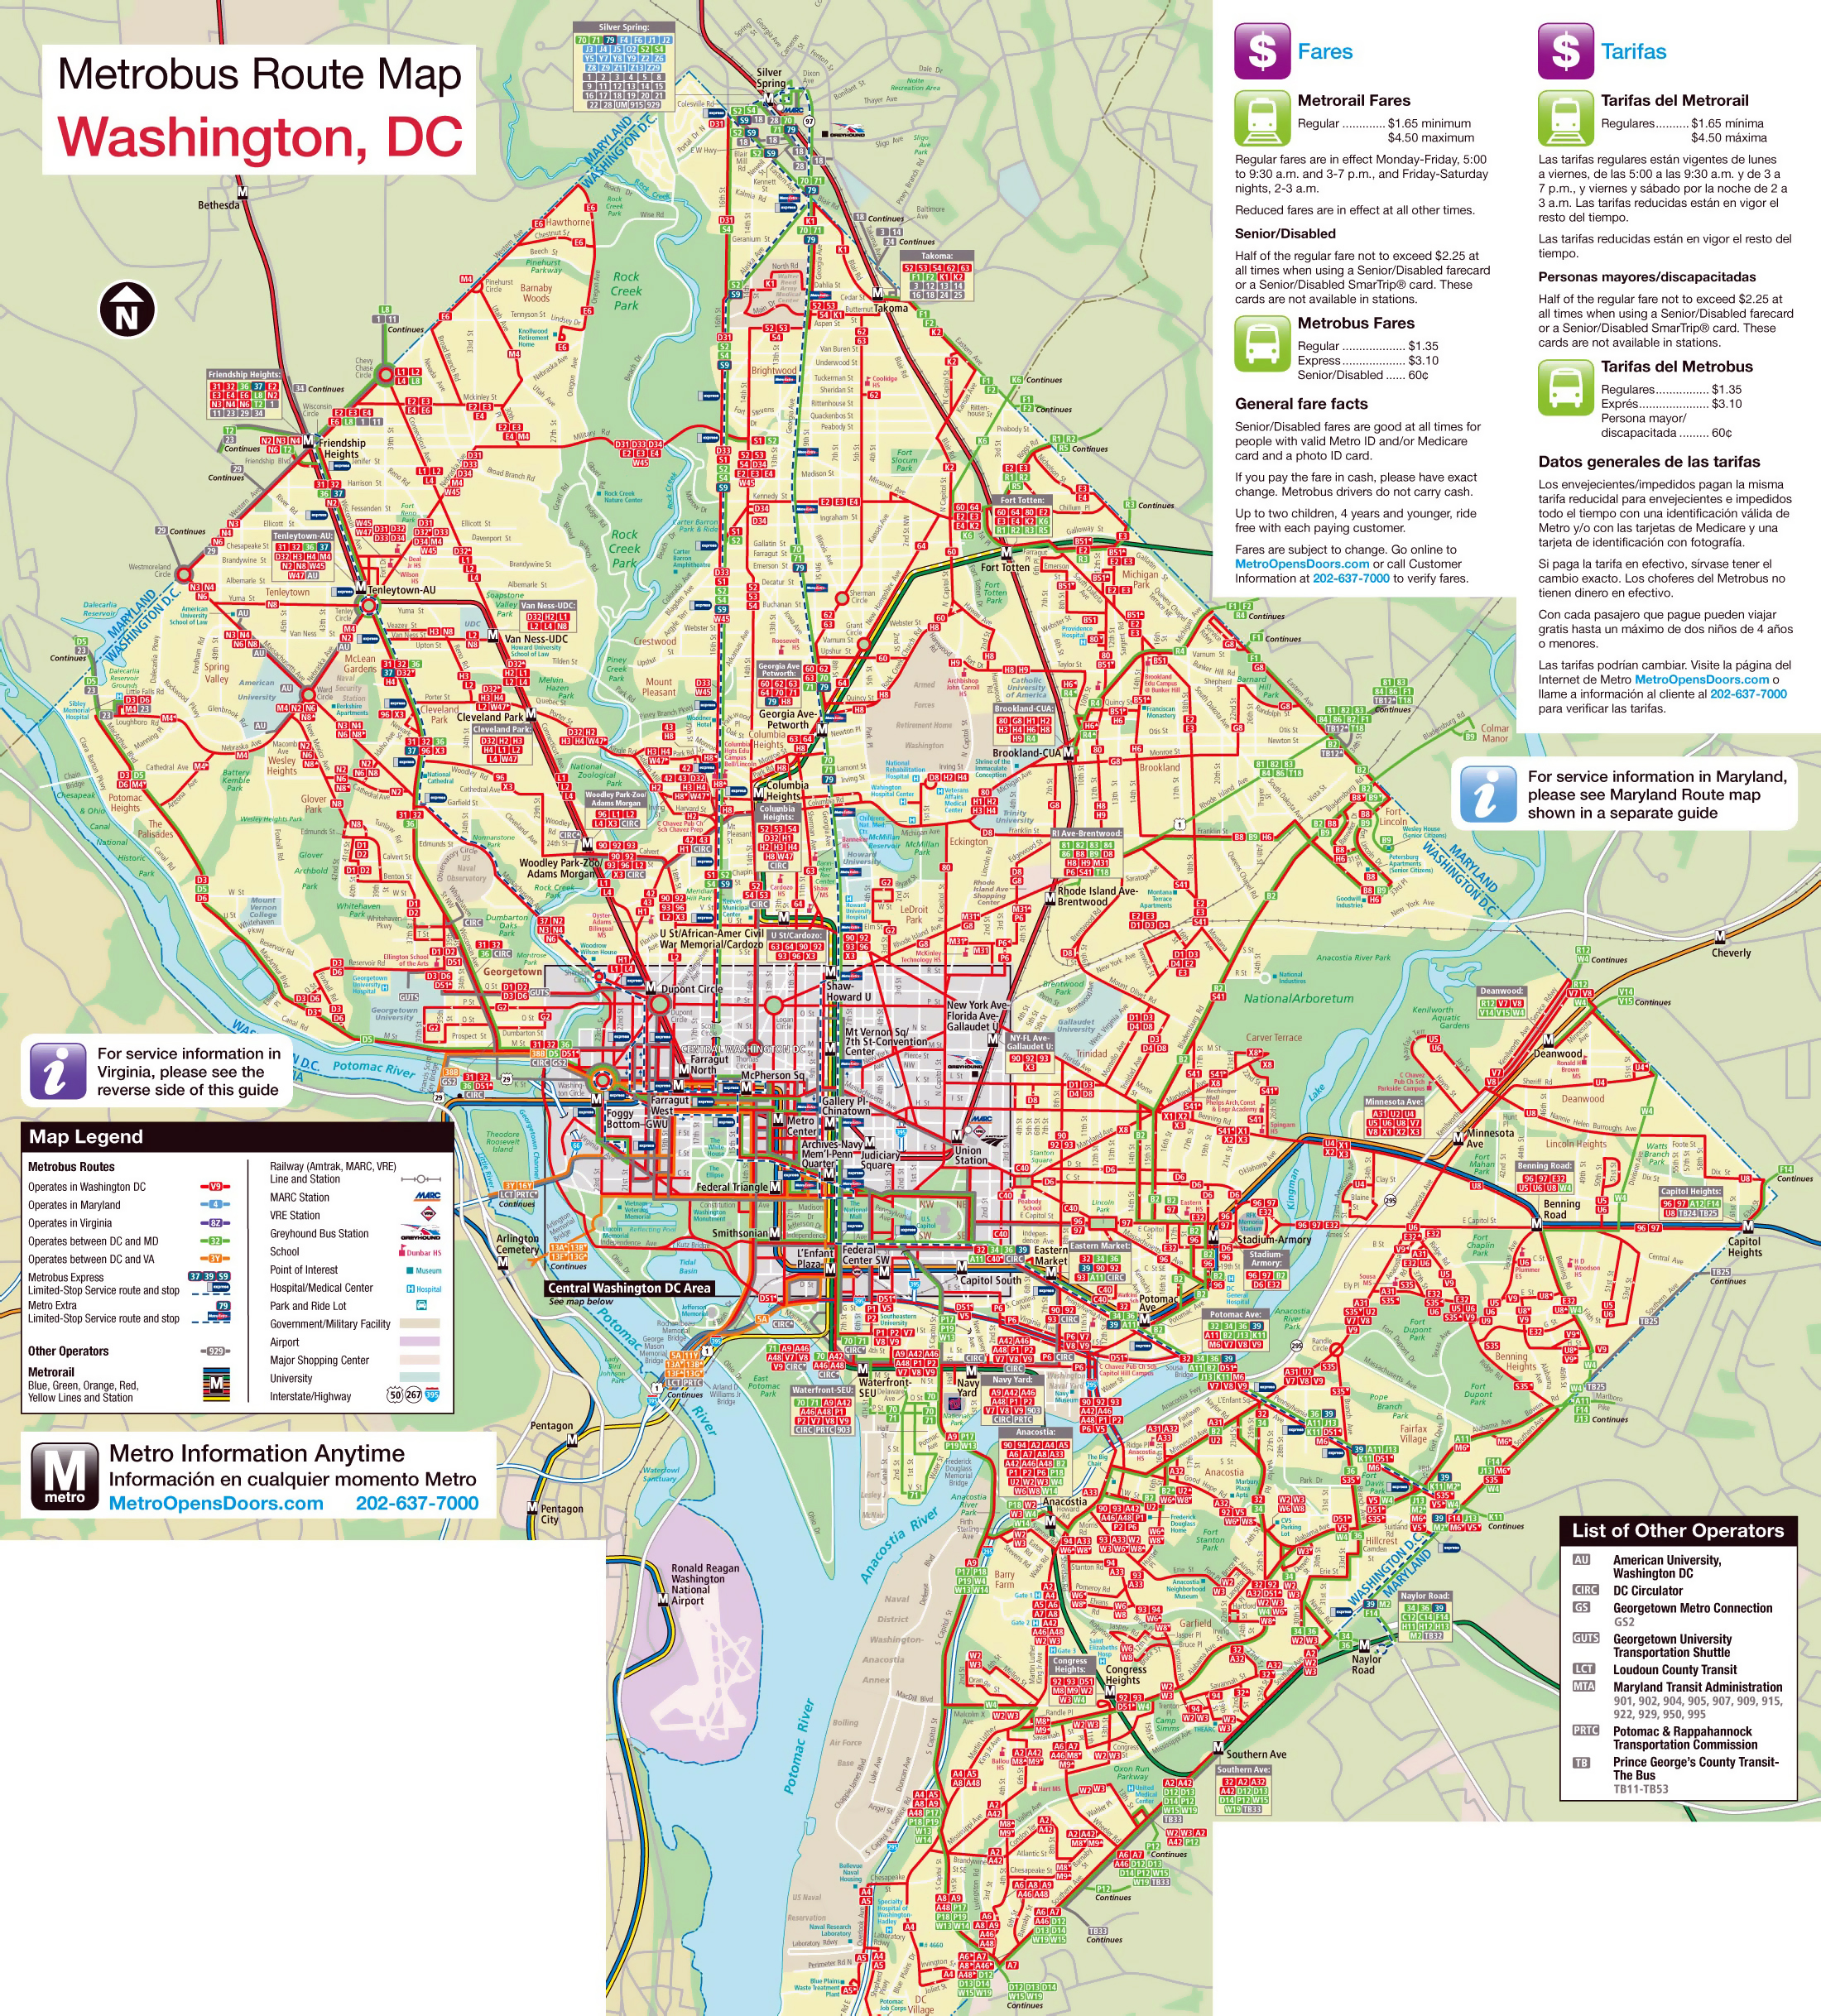 Large metrobus route map of Washington DC Washington DC USA